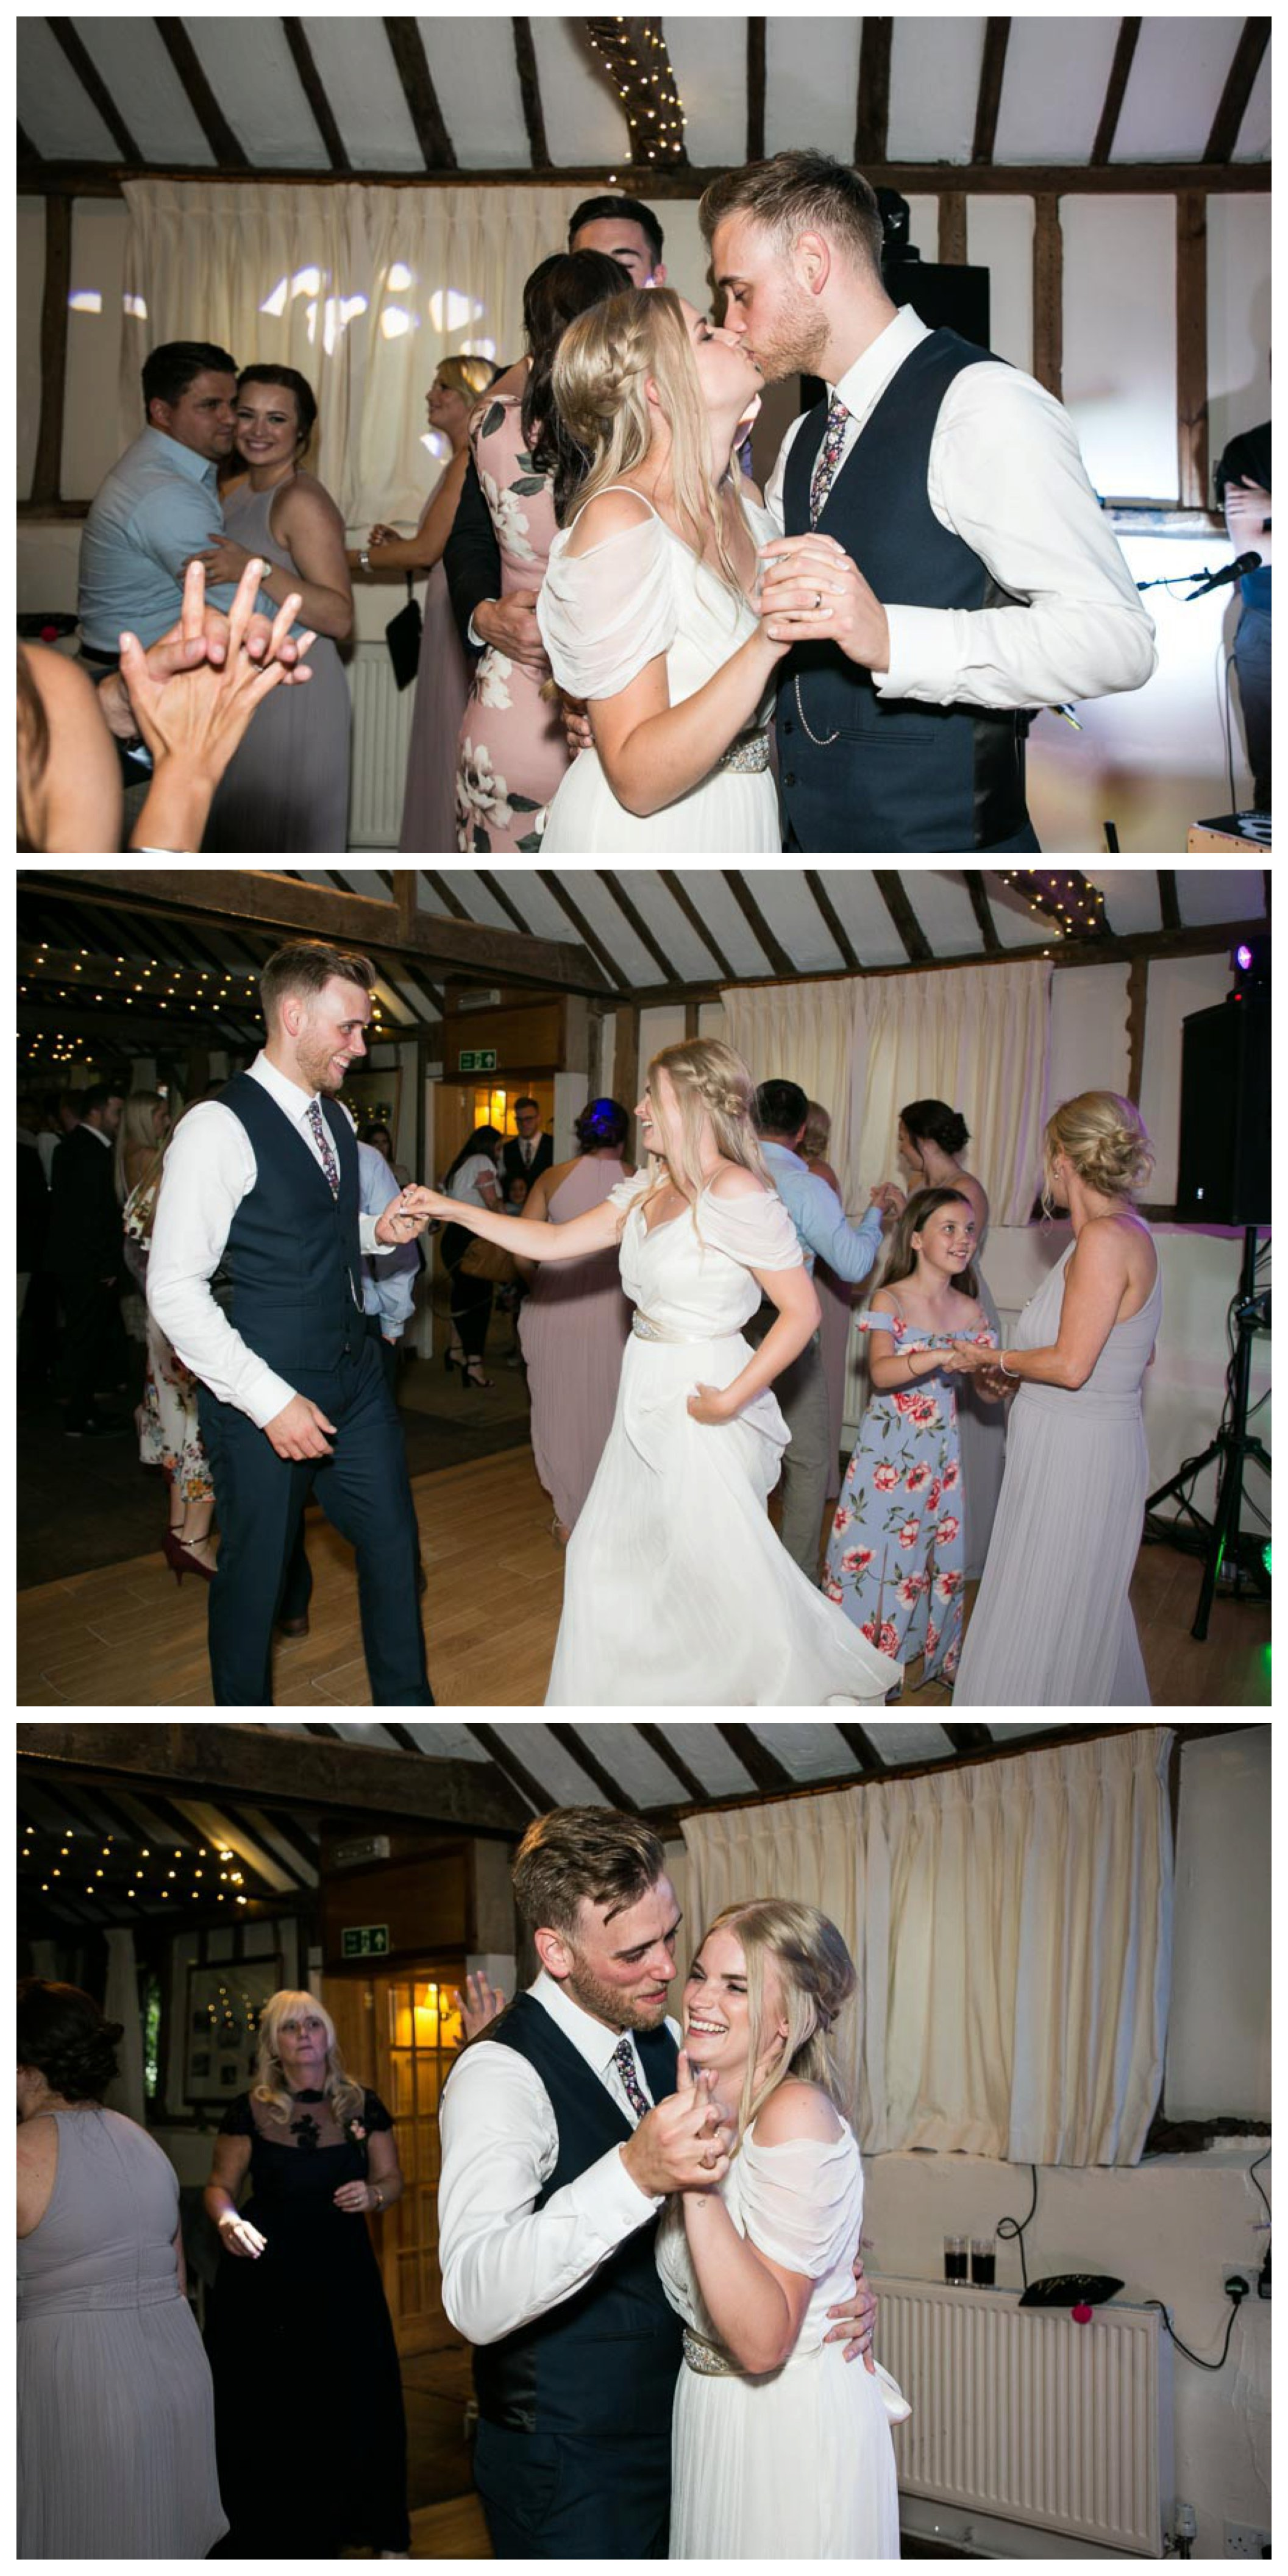 bride and grooms first dance, fun party at wedding